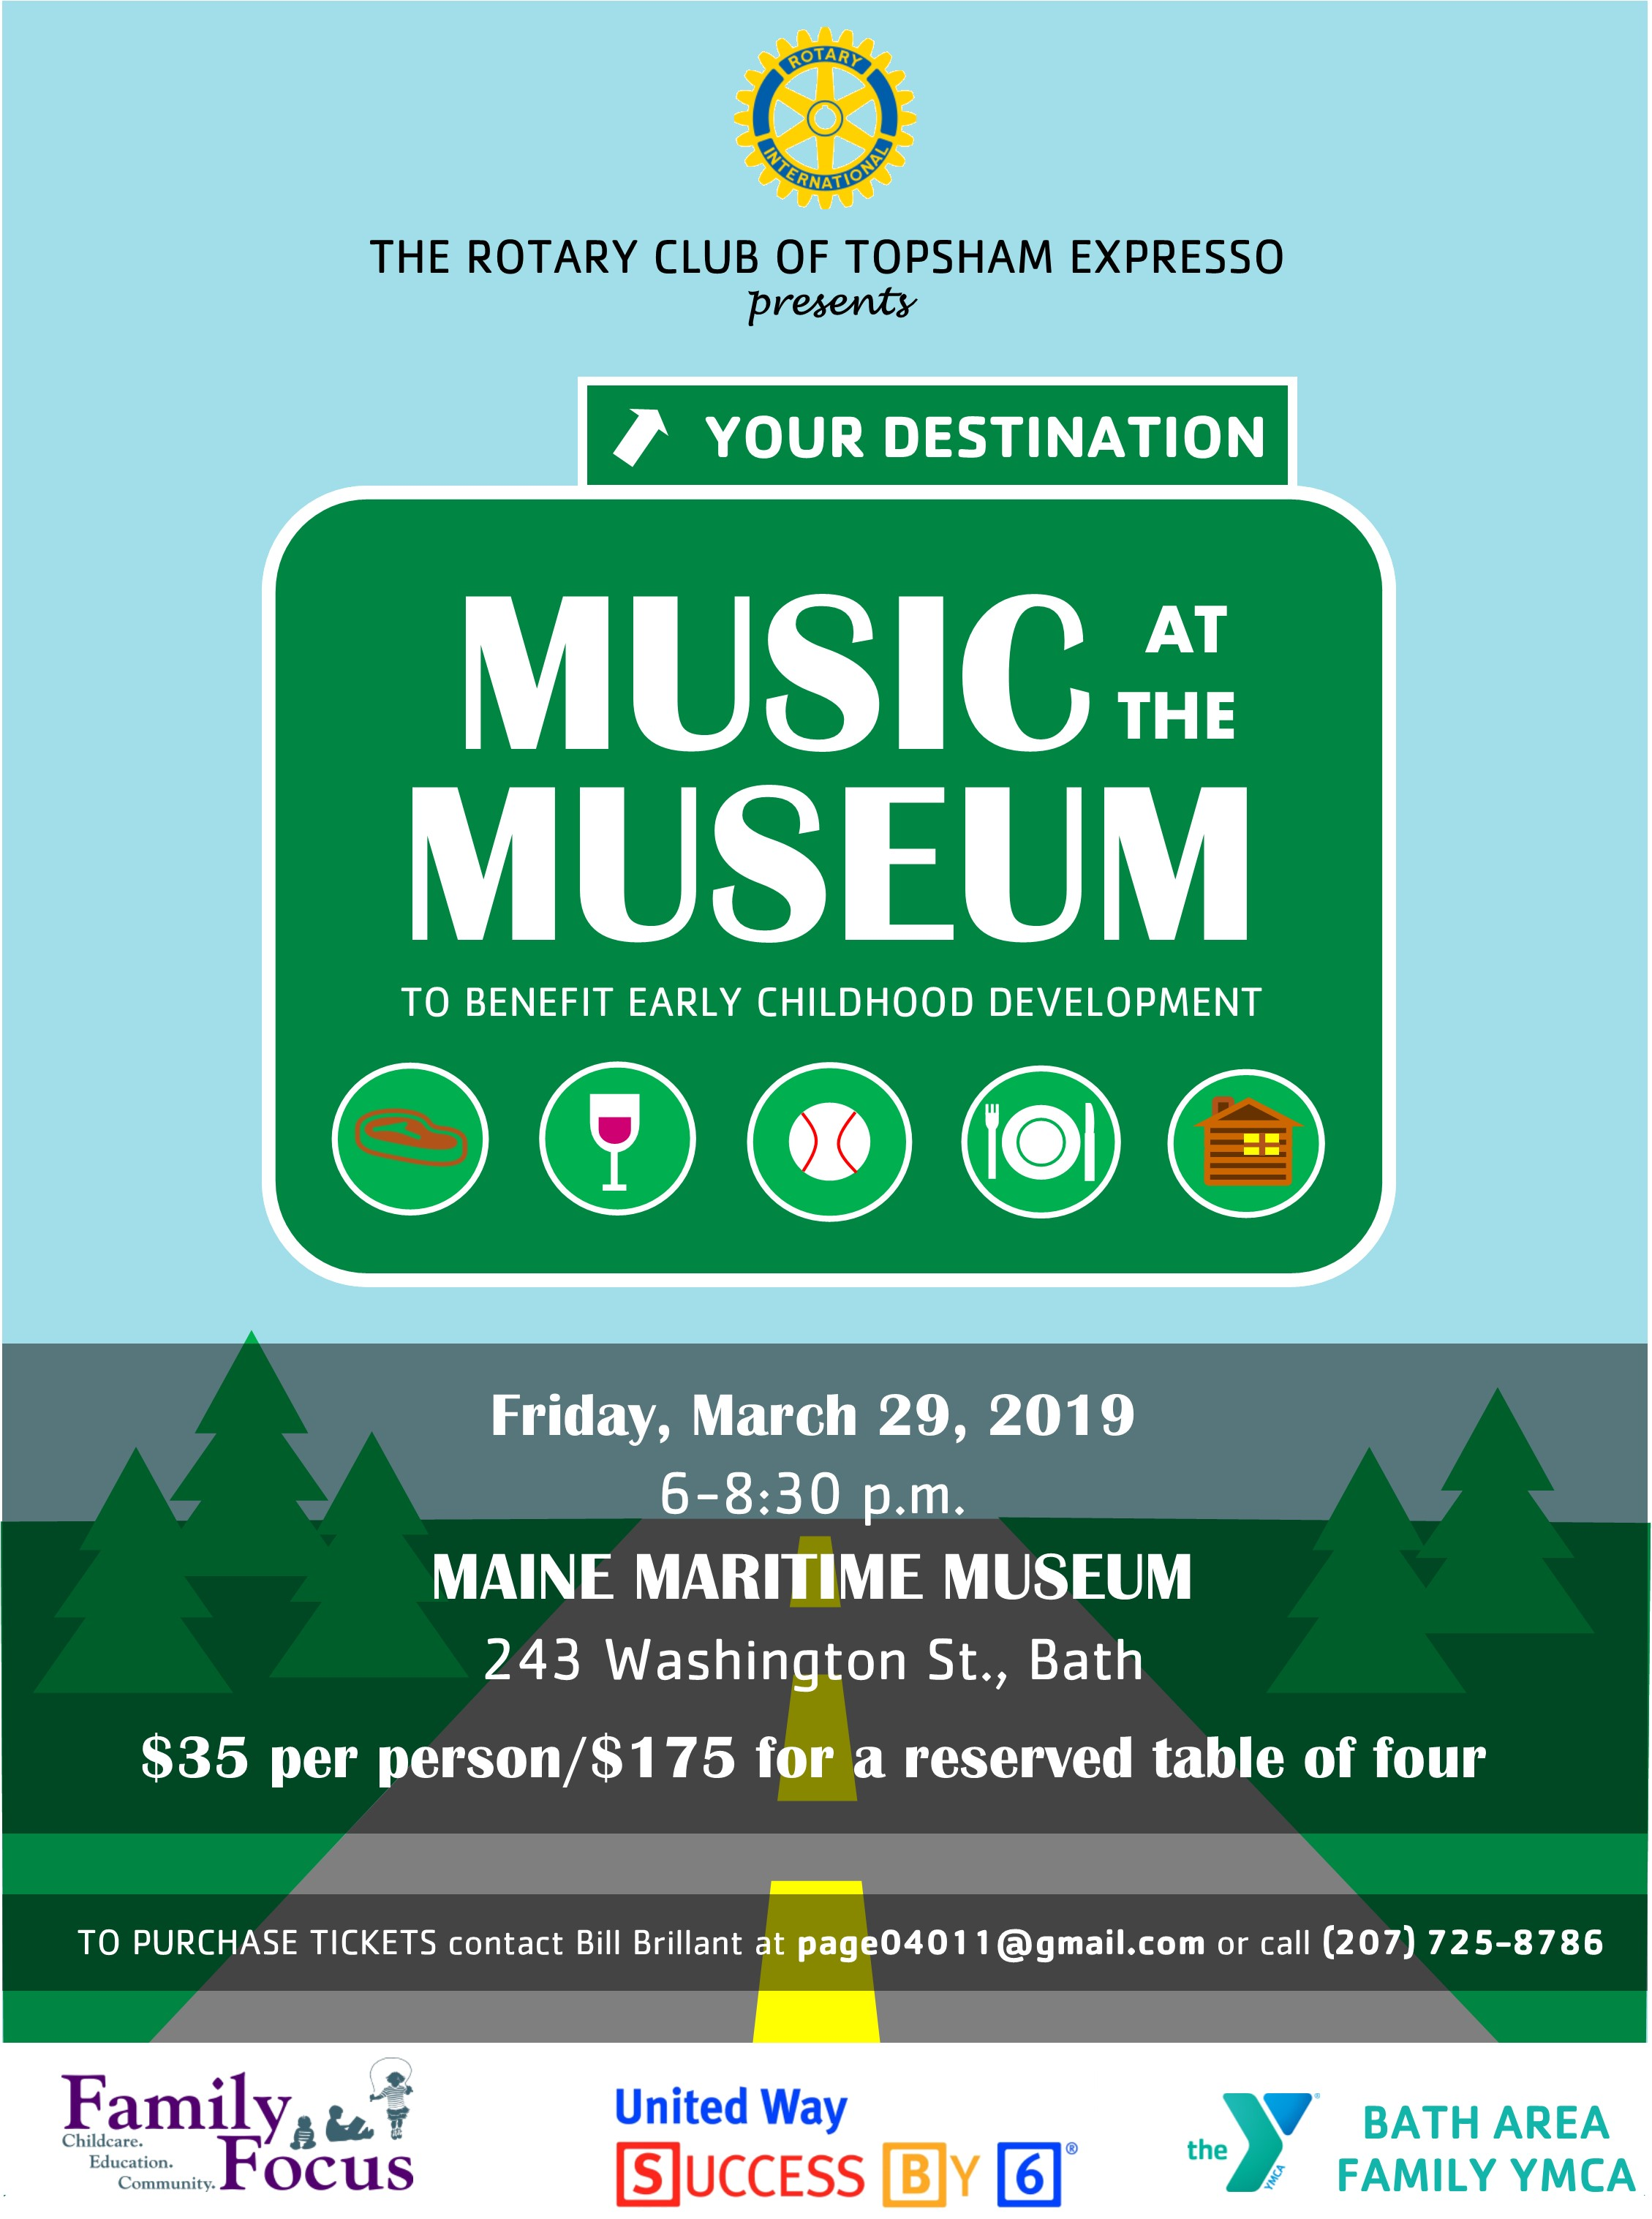 Music at the Museum - Bath Area Family YMCA